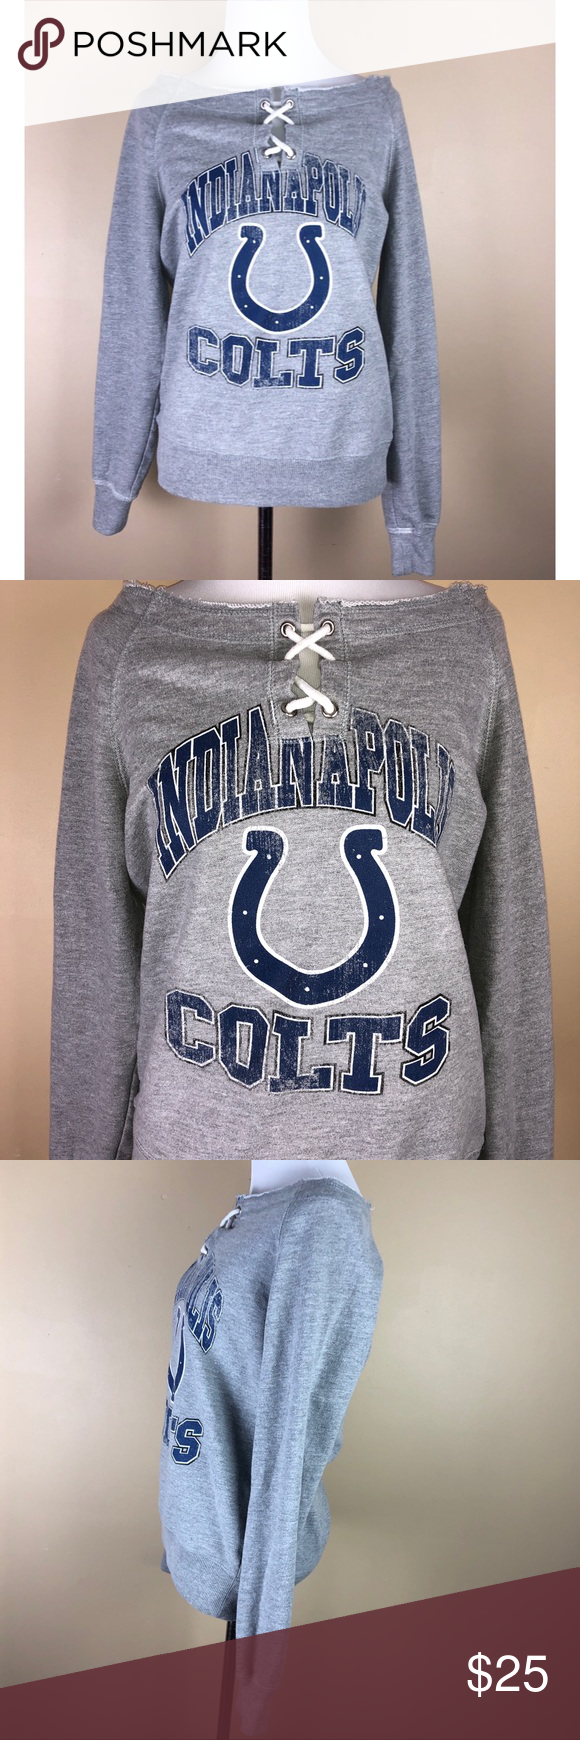 Nfl Indianapolis Colts Grey Crewneck Size Small Brand Nfl Color Grey Blue Condition Great Used Condition Sweatshirt Tops Clothes Design Sweatshirts Hoodie [ 1740 x 580 Pixel ]